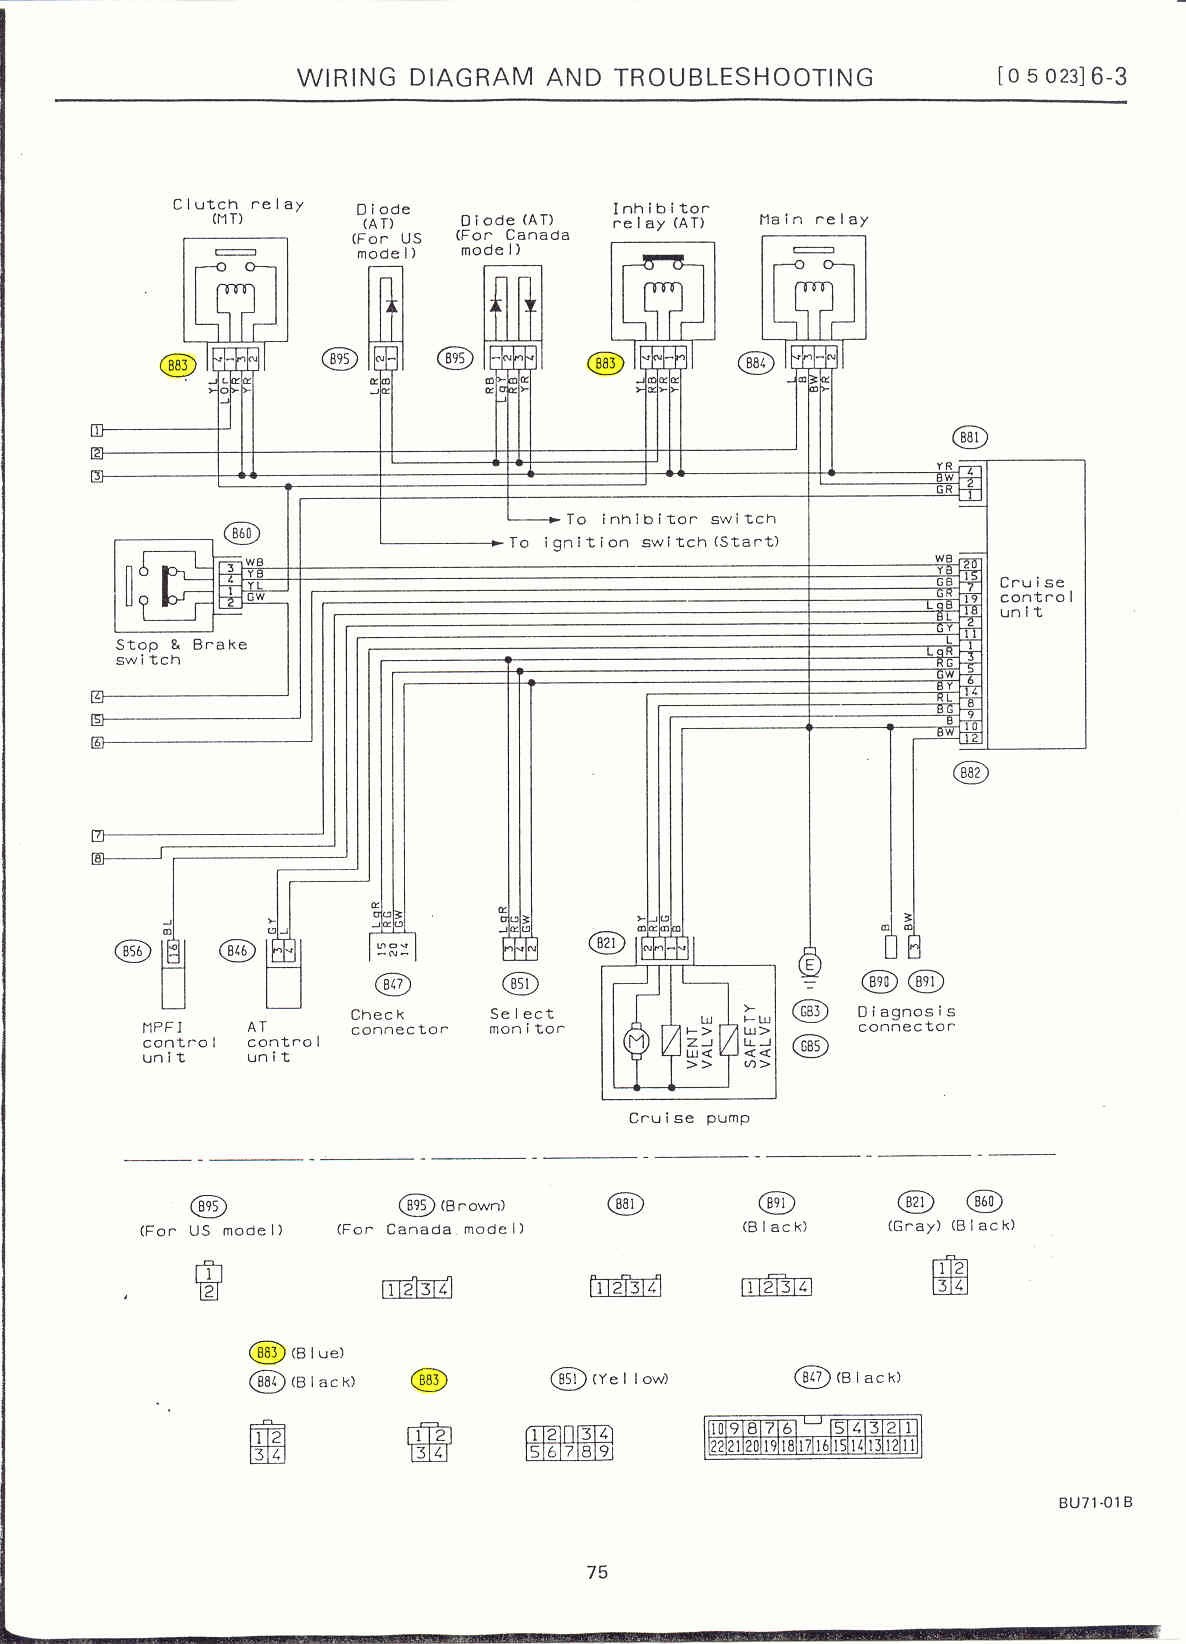 Subaru Justy Wiring Diagram Smart Diagrams bull Wiring